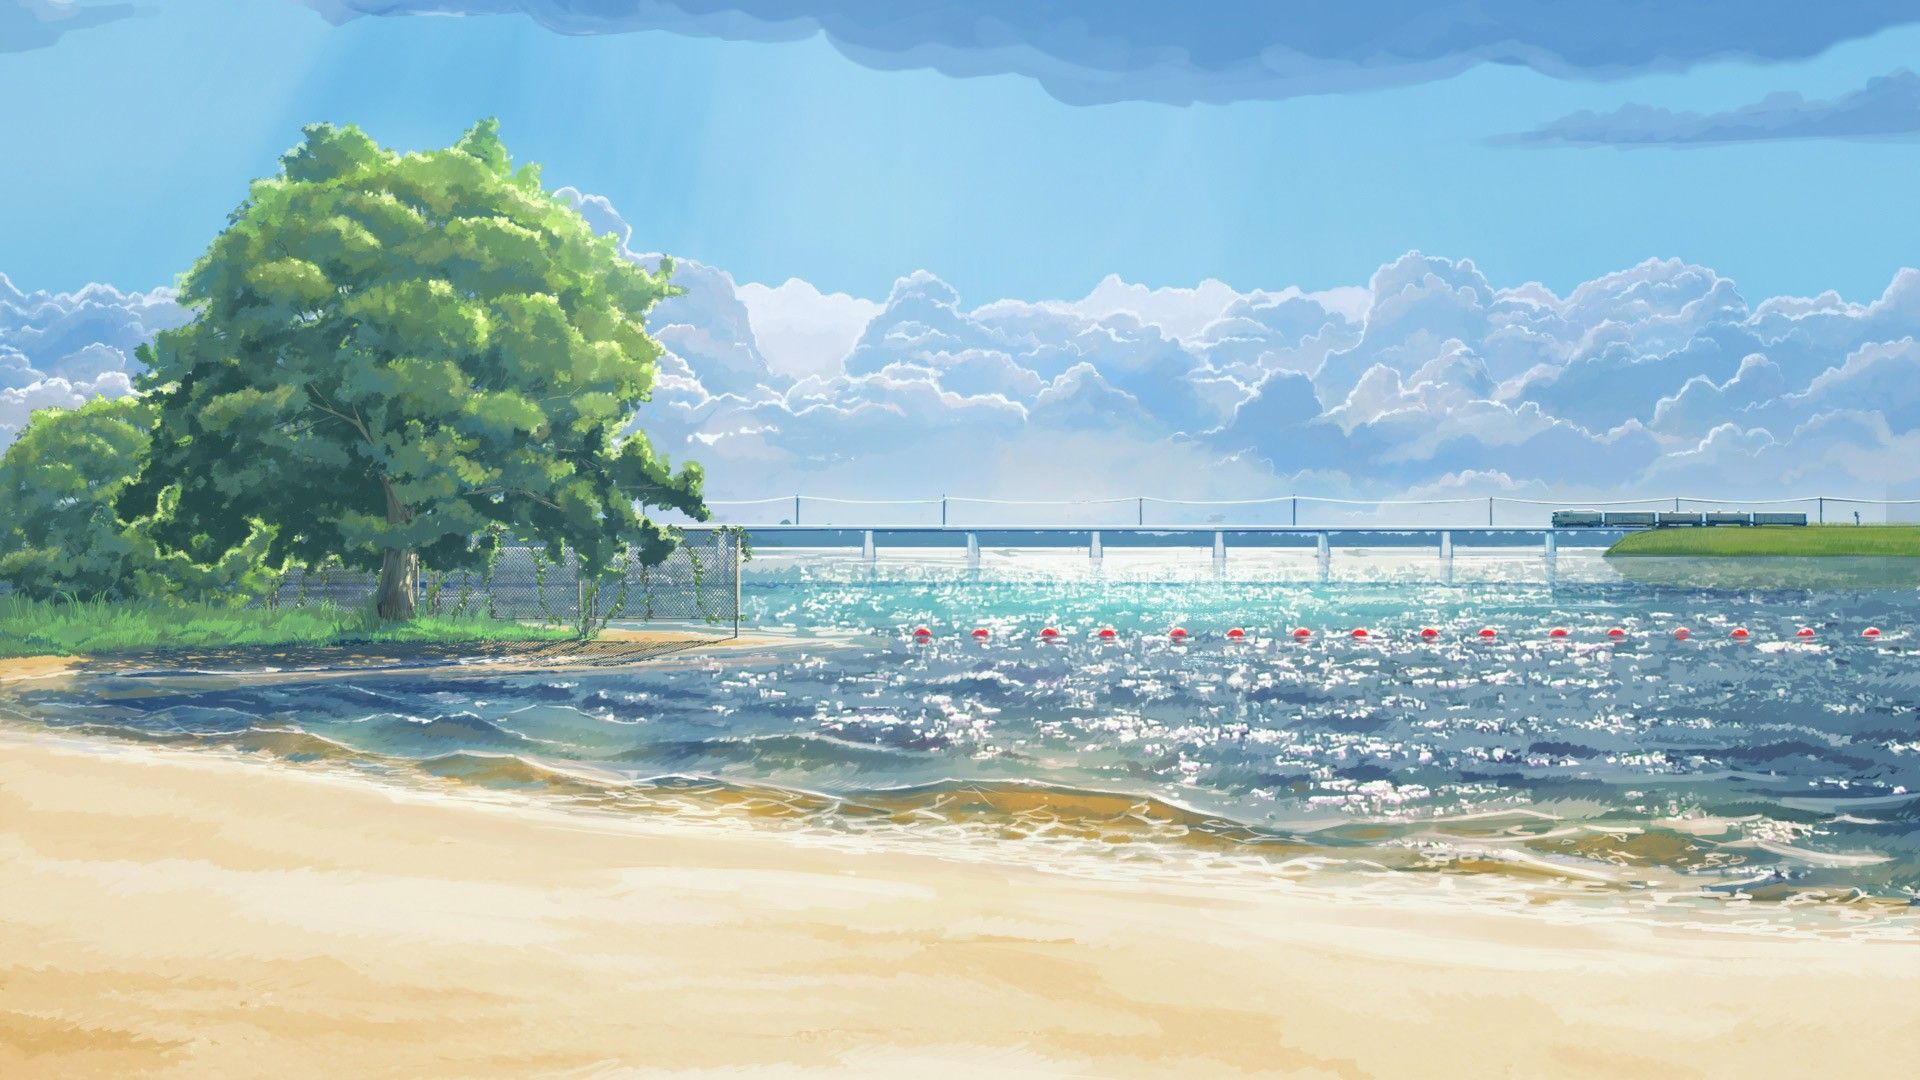 Arsenixc Clouds Everlasting Summer Beach Sea Artwork Trees Wallpaper Anime Scenery Scenery Wallpaper Anime Scenery Wallpaper